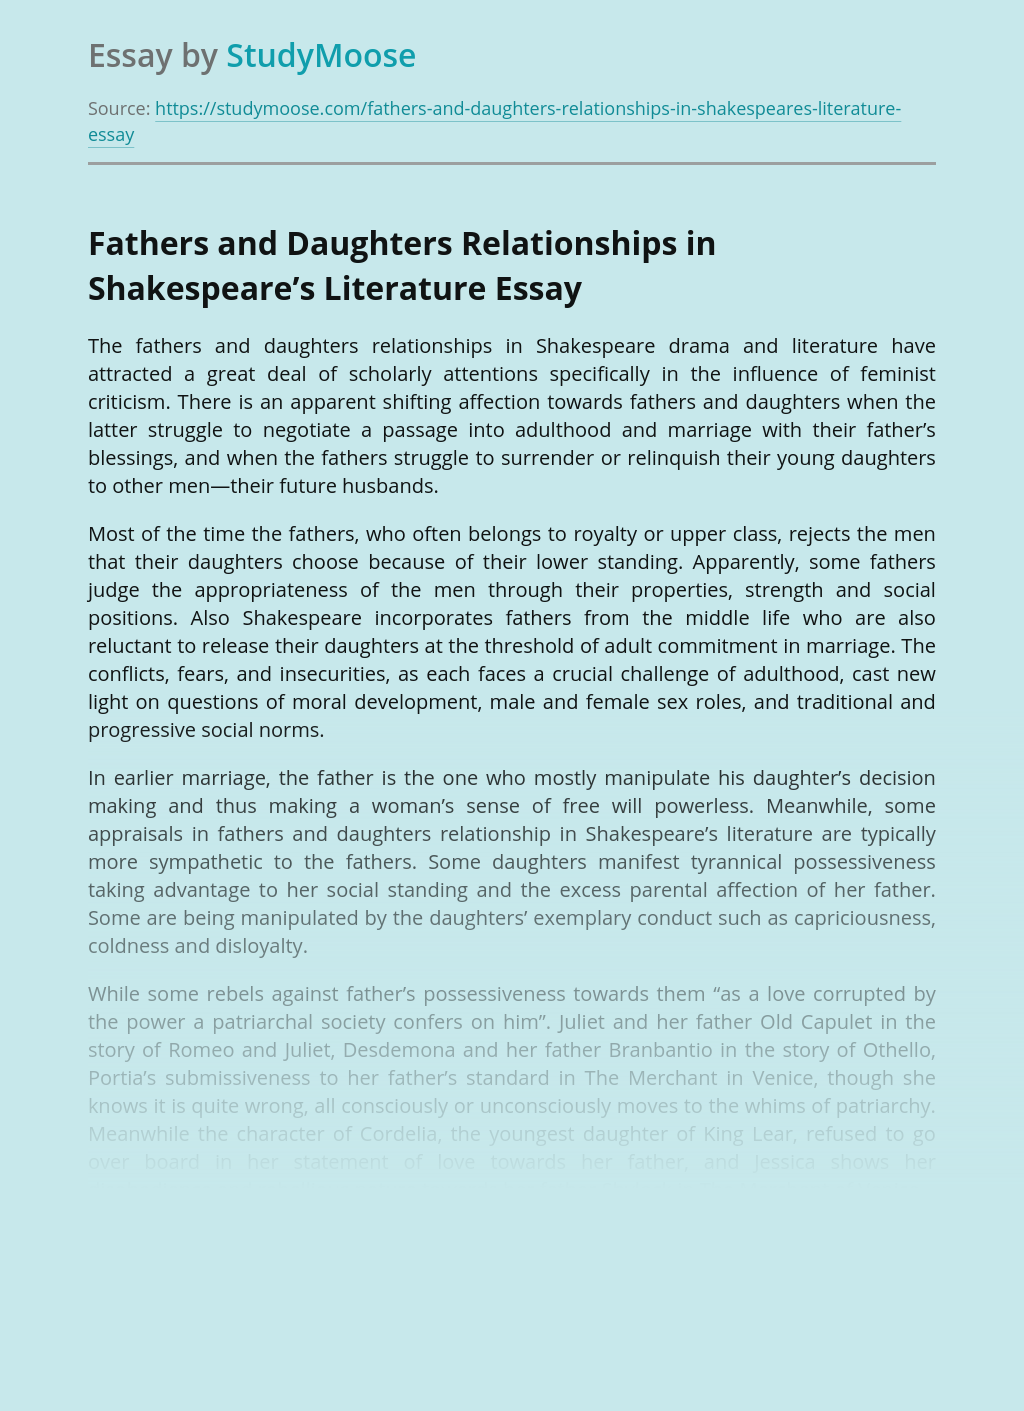 Fathers and Daughters Relationships in Shakespeare's Literature